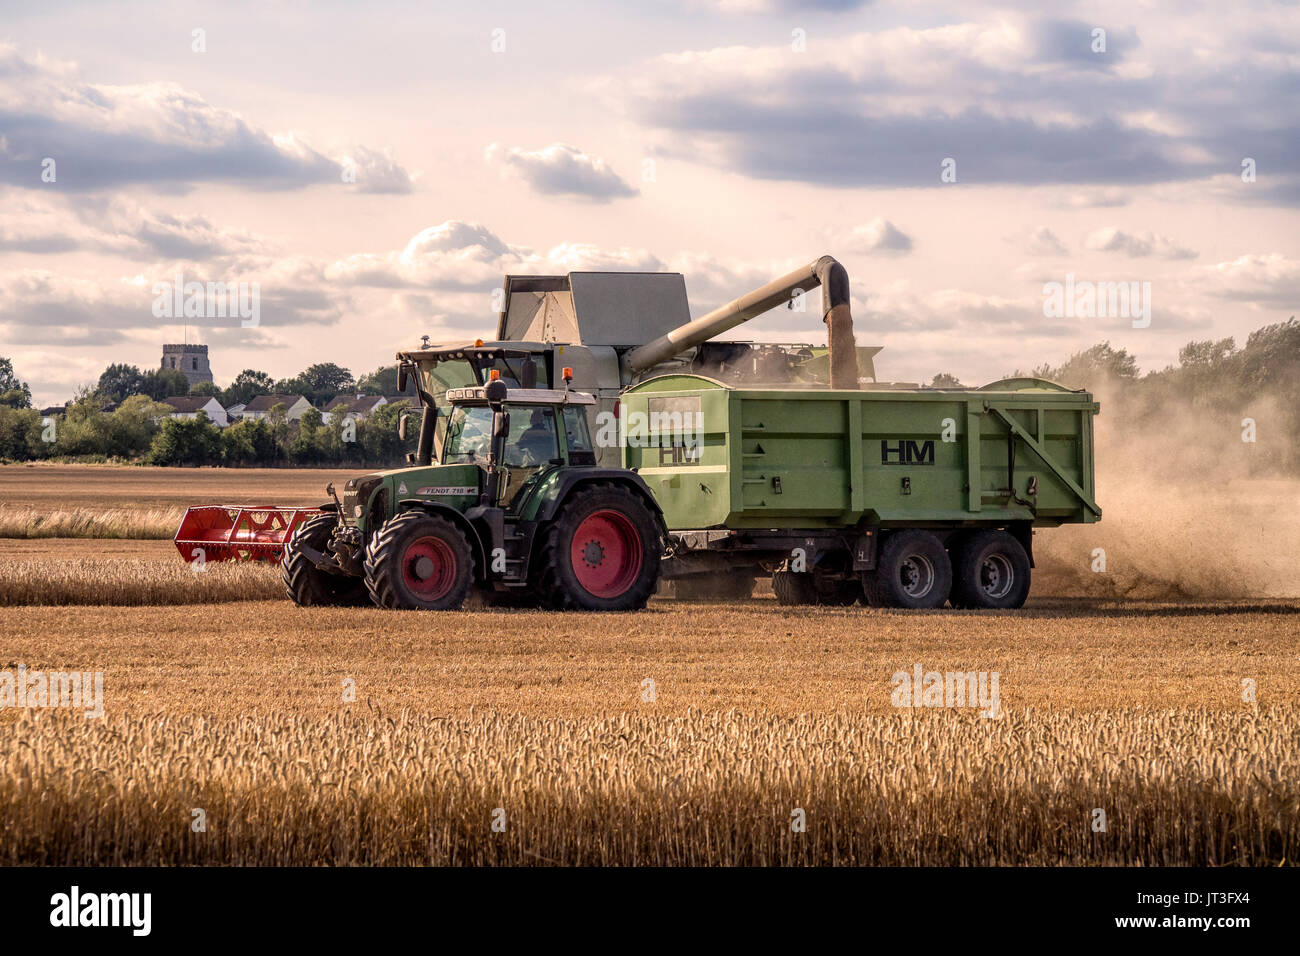 Combine harvester transferring harvested wheat in to tractor trailer in rural Essex field - Stock Image